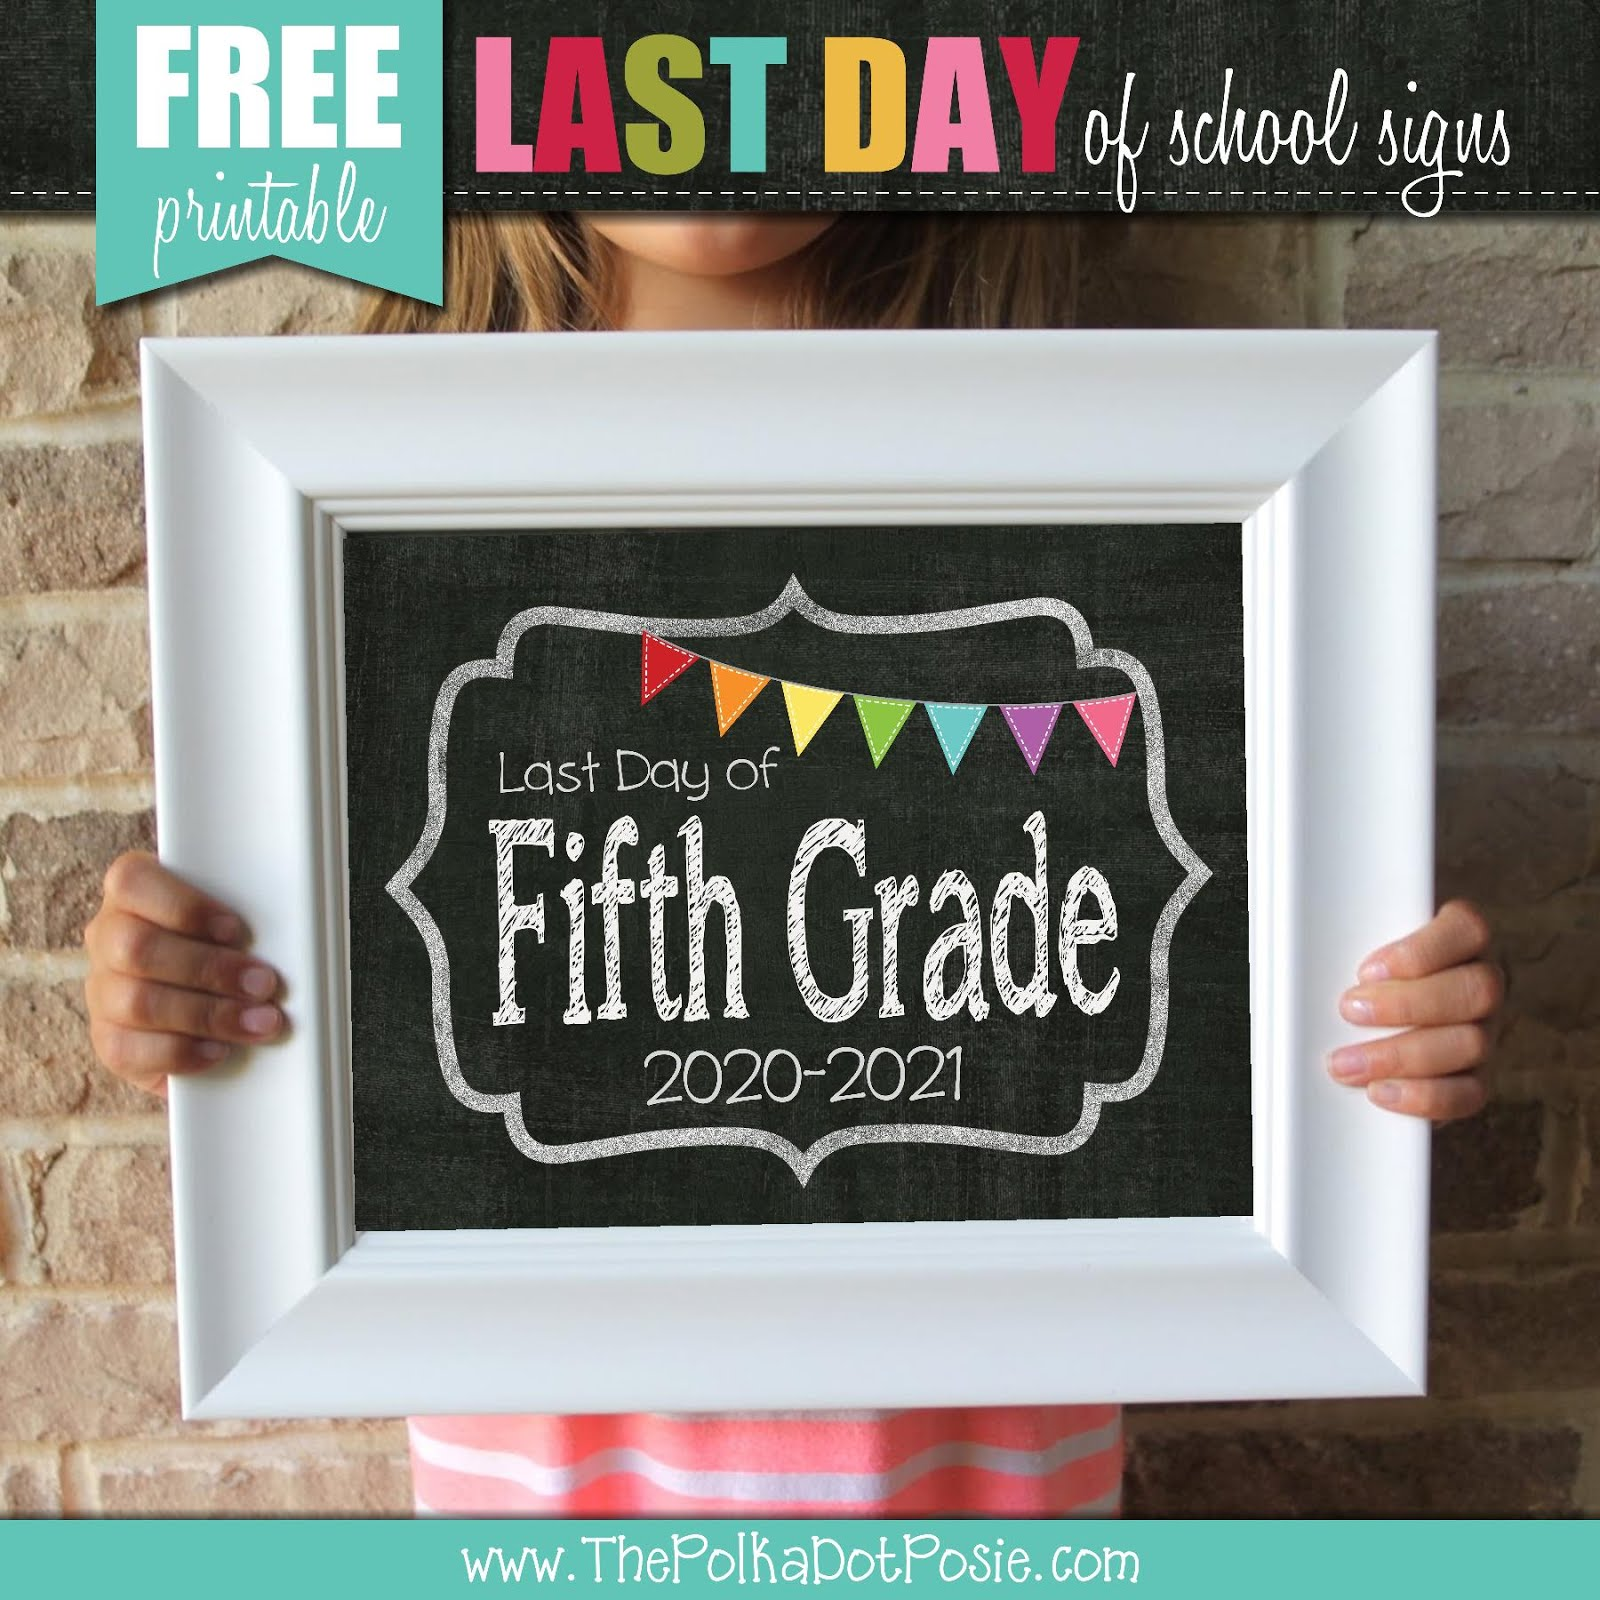 FREE Last Day of School Signs!